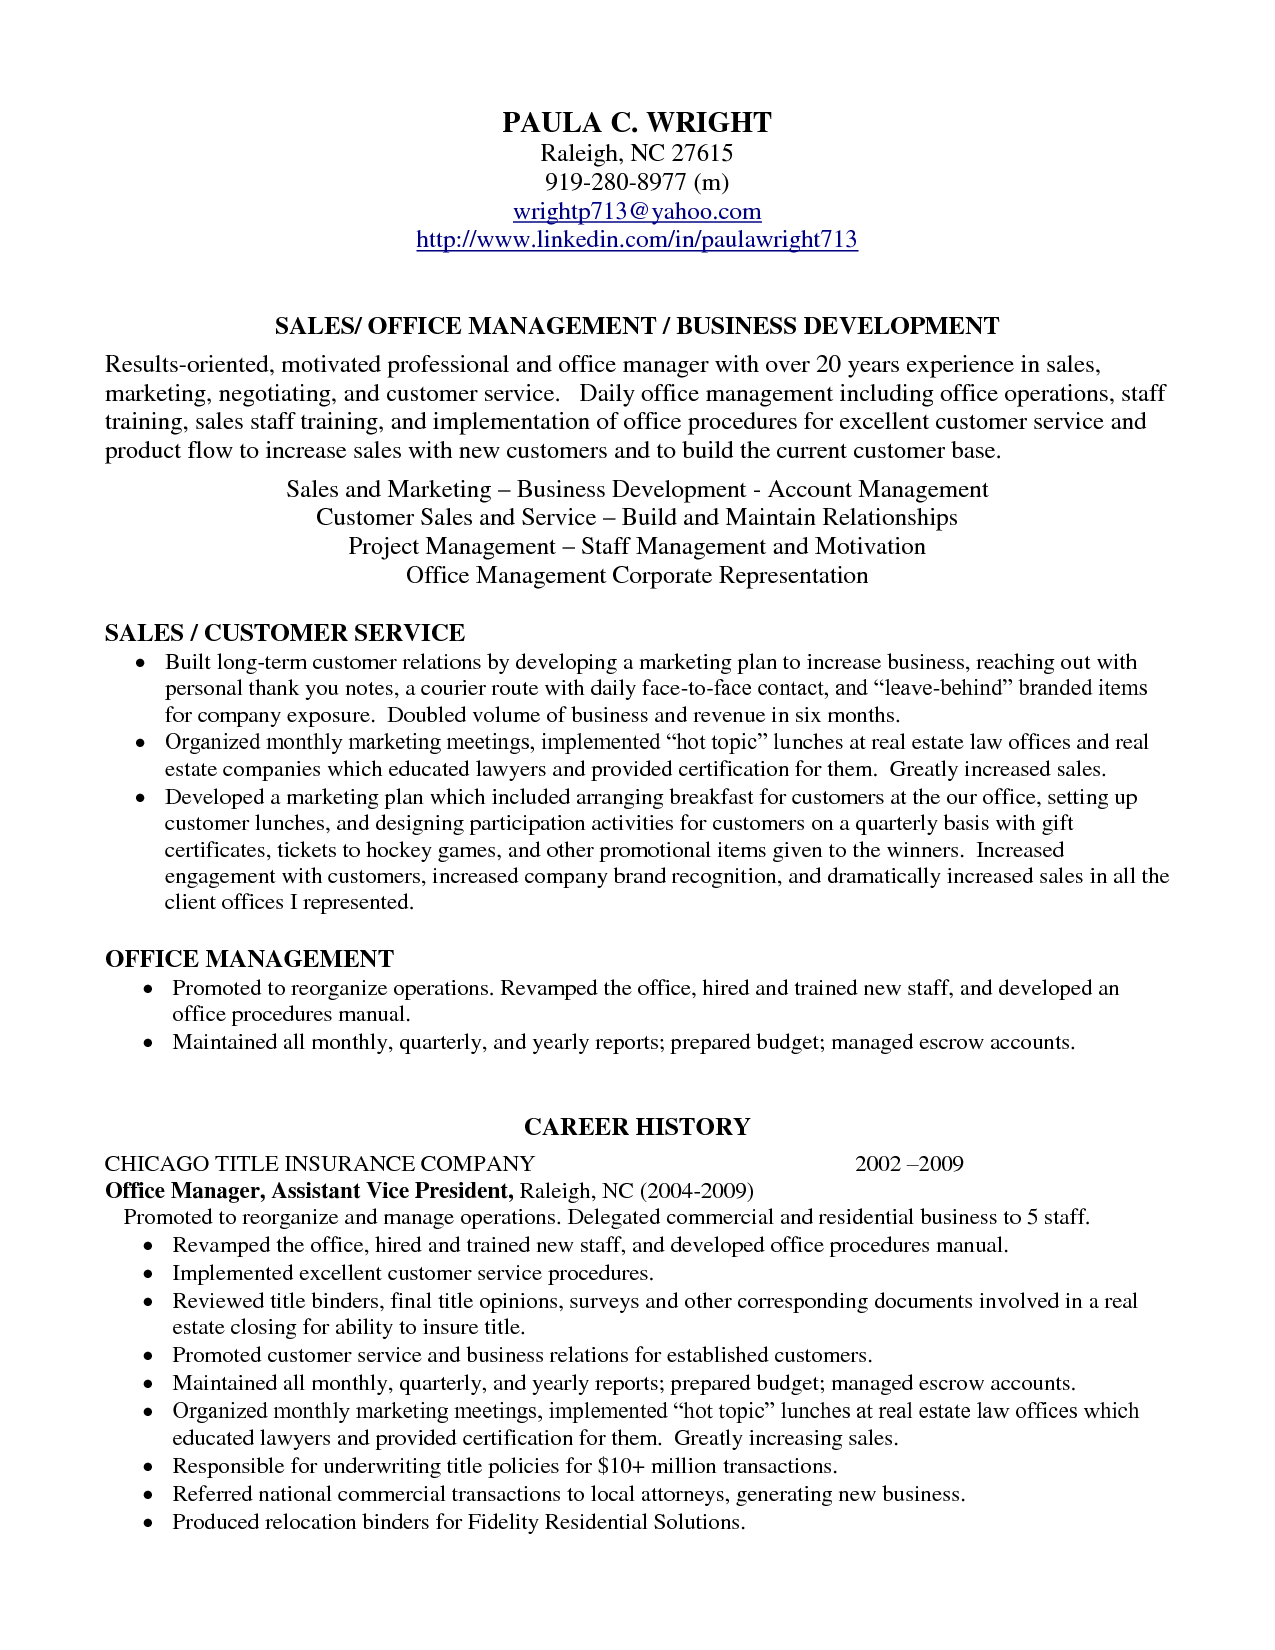 Marketing Resume Skills Professional Profile Resume Examplesresume Professional Profile